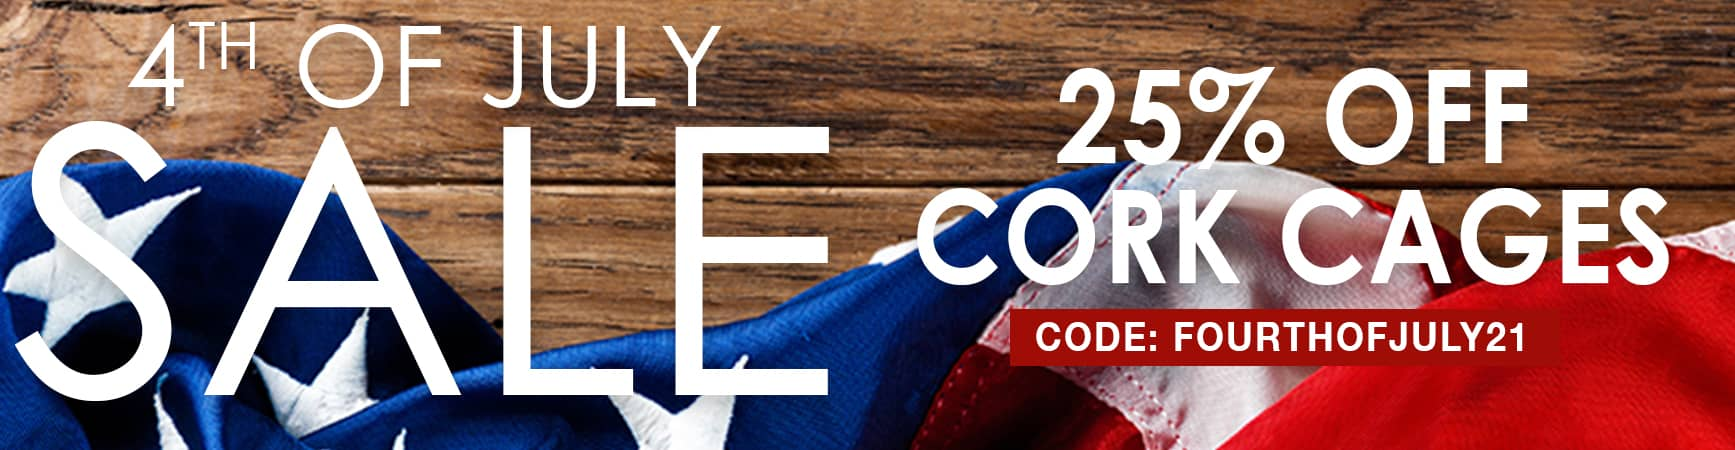 4th of July Sale! 25% Off Cork Cages. Use Code: FOURTHOFJULY21